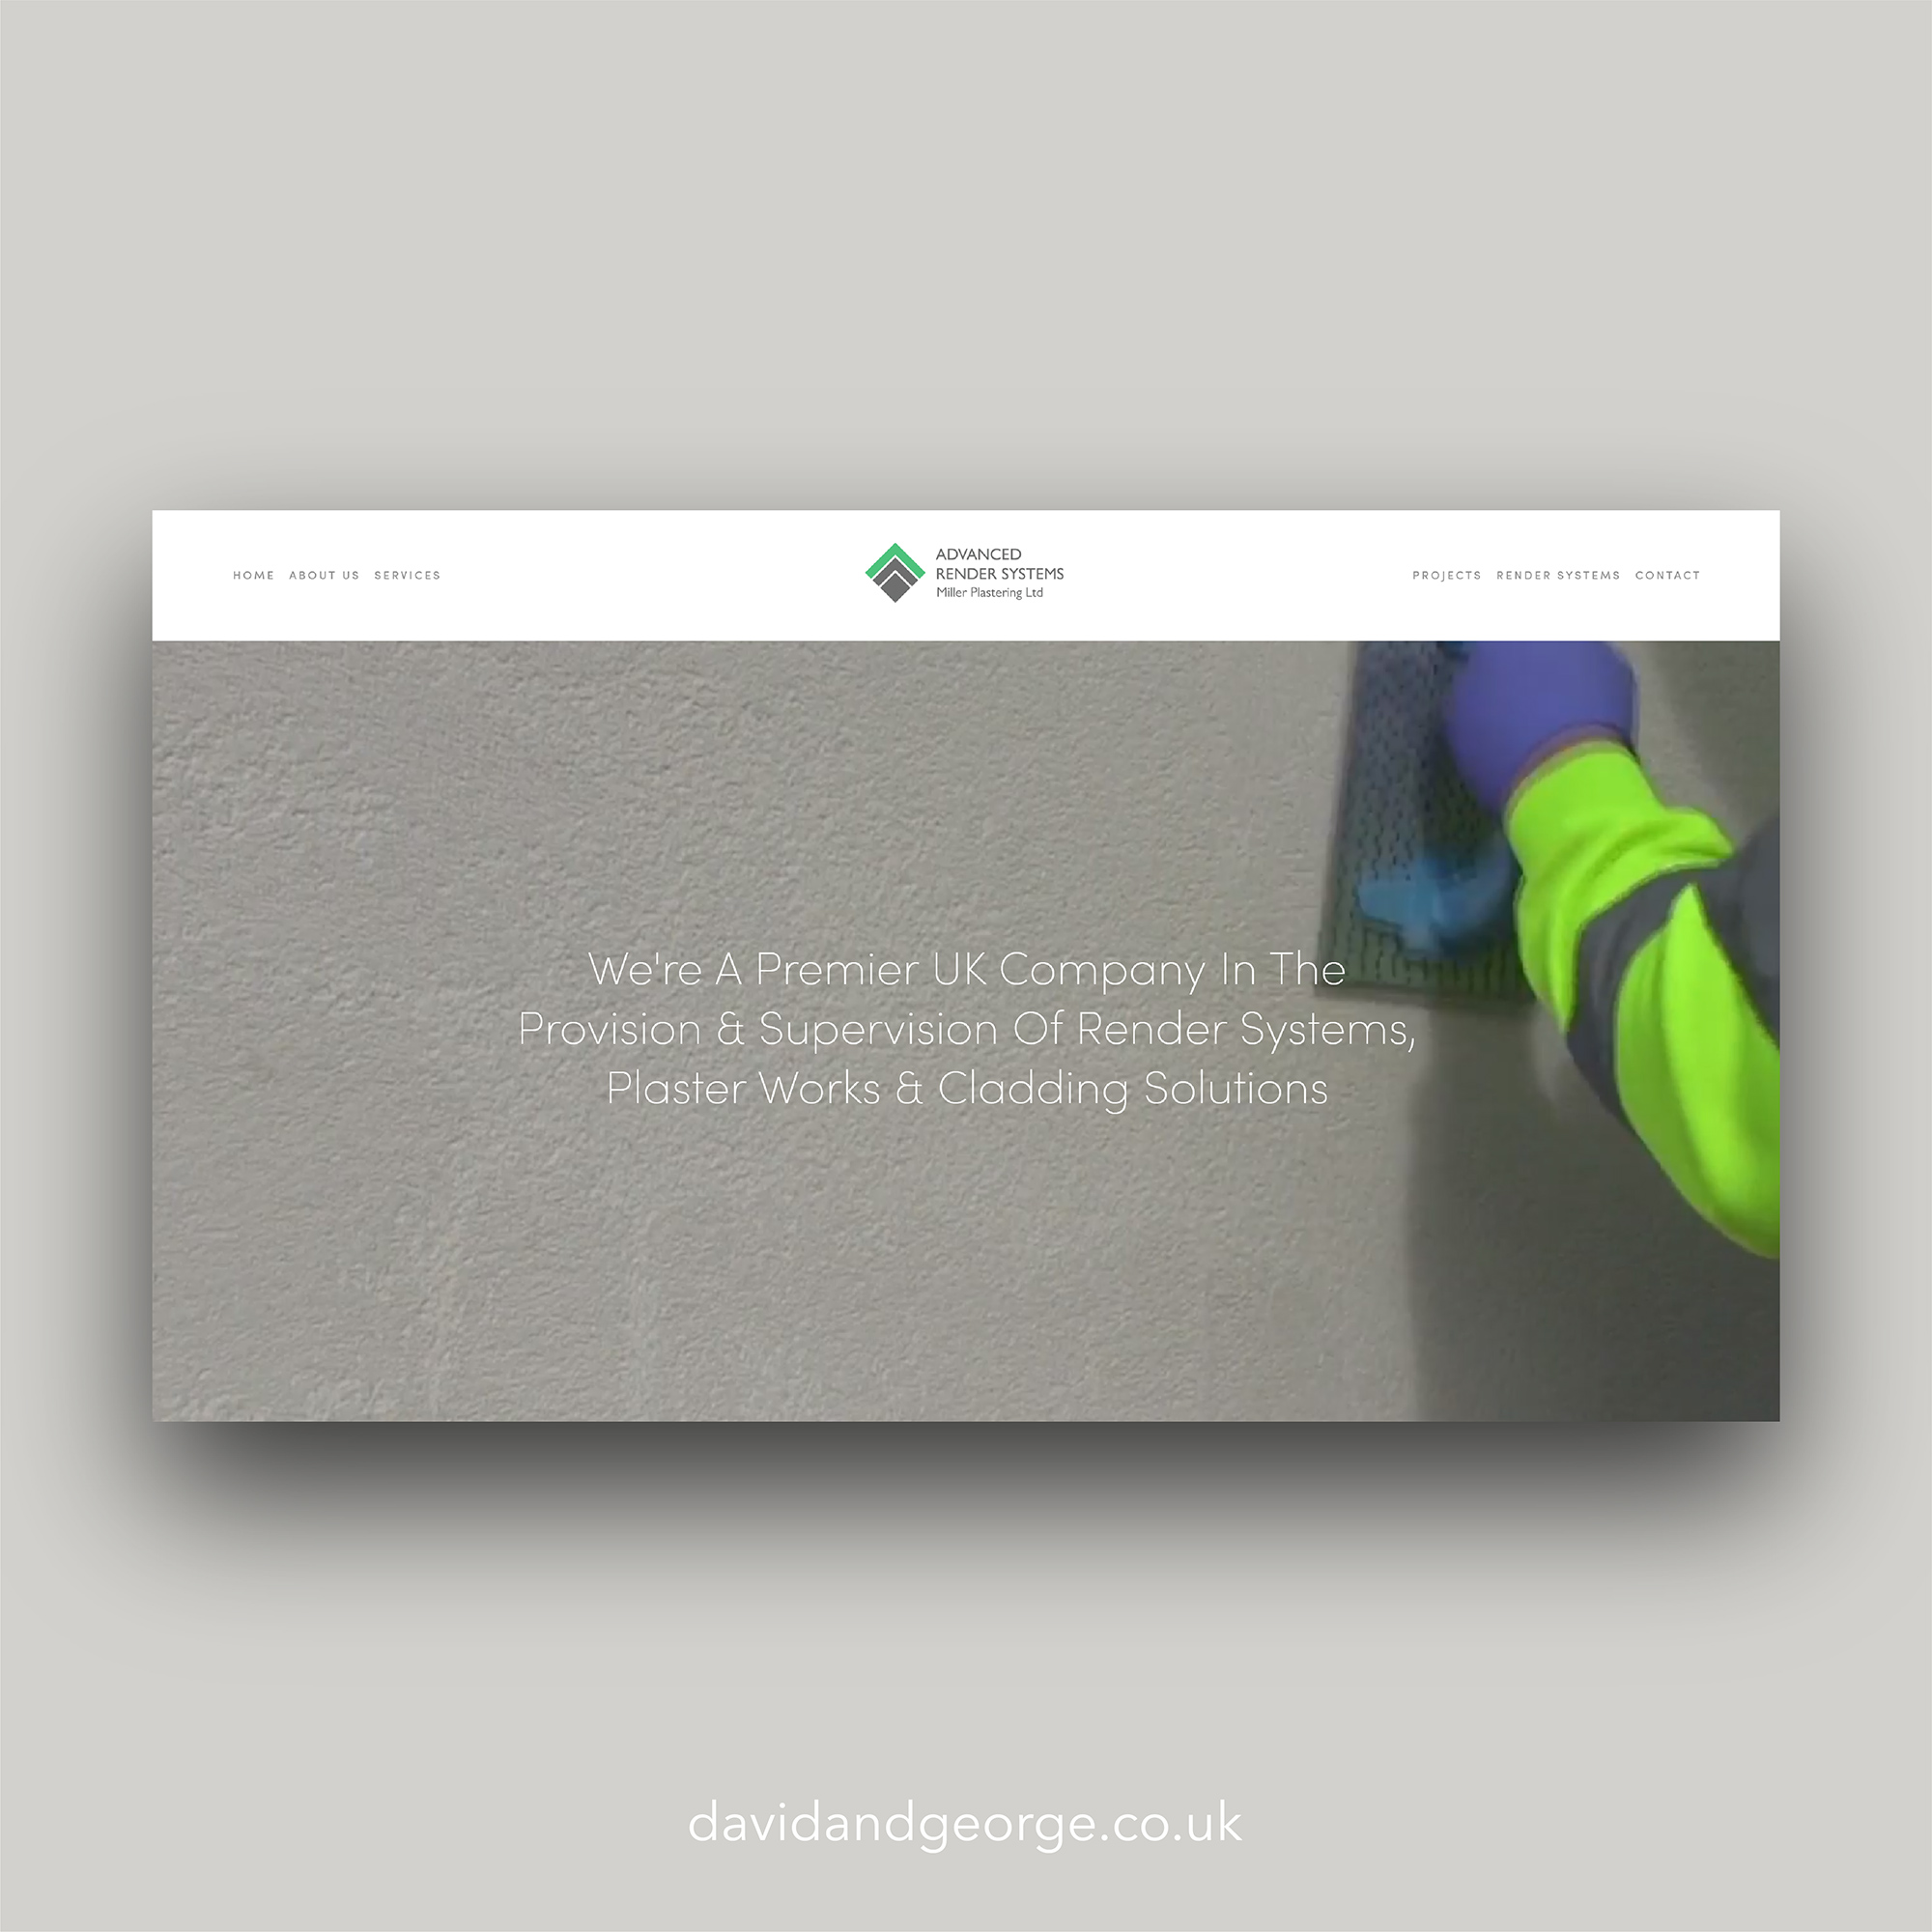 adavnced-render-systems-miller-plastering-edinburgh-squarespace-designer-uk-best-trades-building-construction-websites-08.jpg